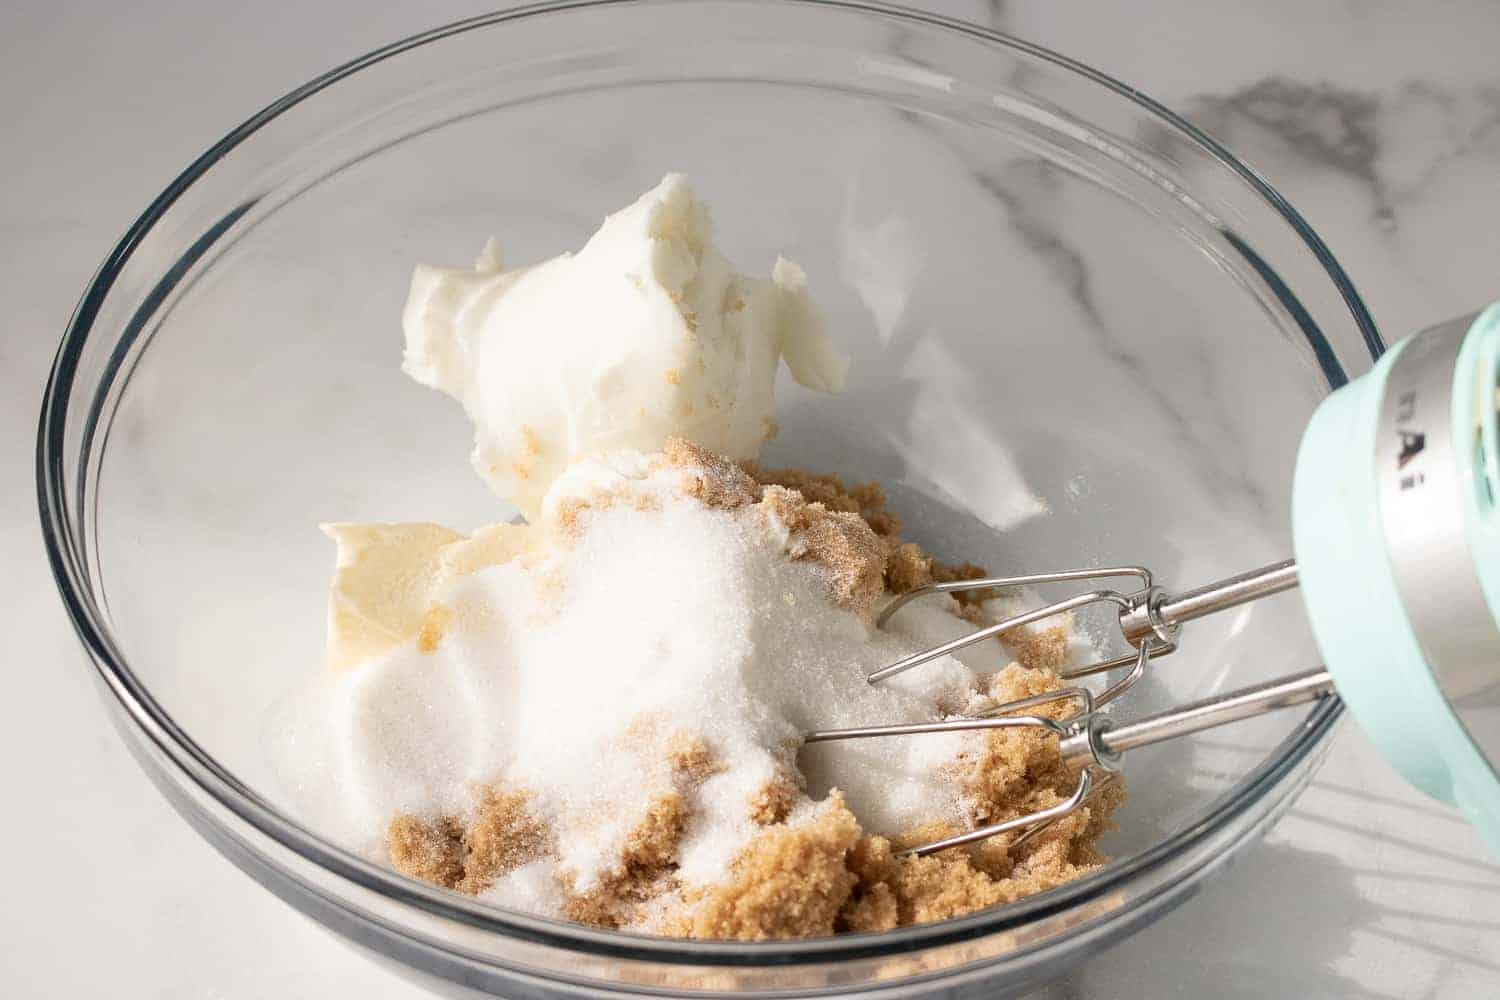 beating sugar and butter together in a bowl